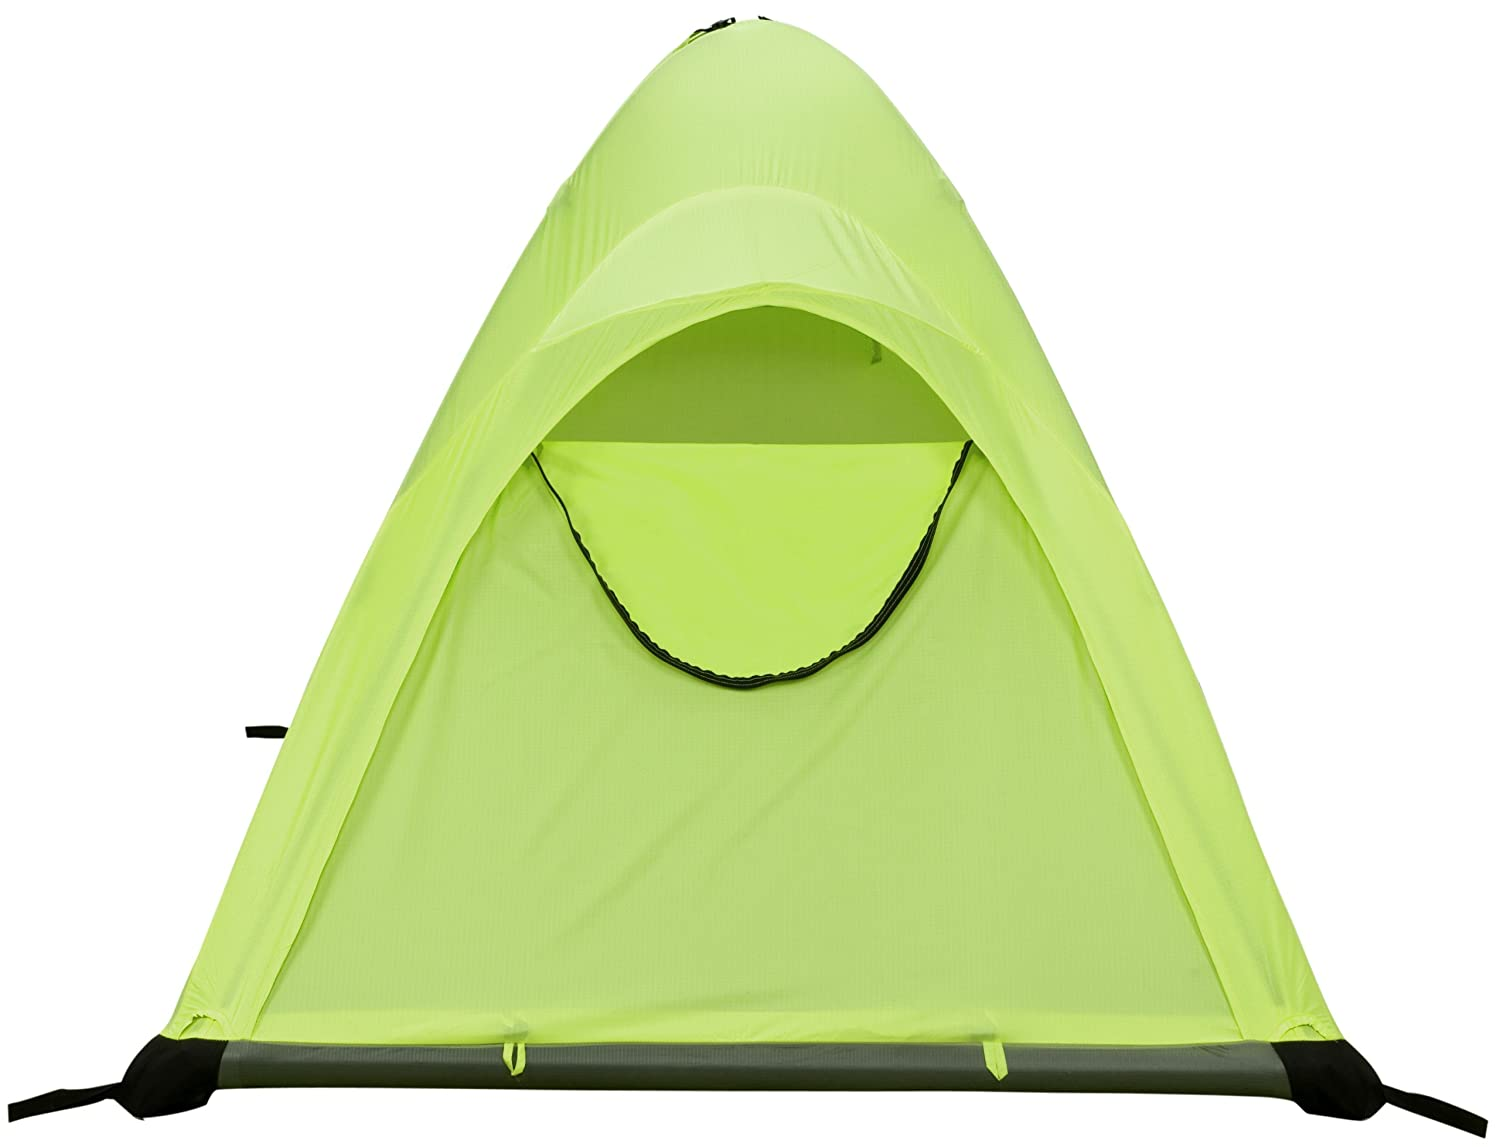 sc 1 st  Amazon.com & Amazon.com : Black Diamond Firstlight Tent : Sports u0026 Outdoors